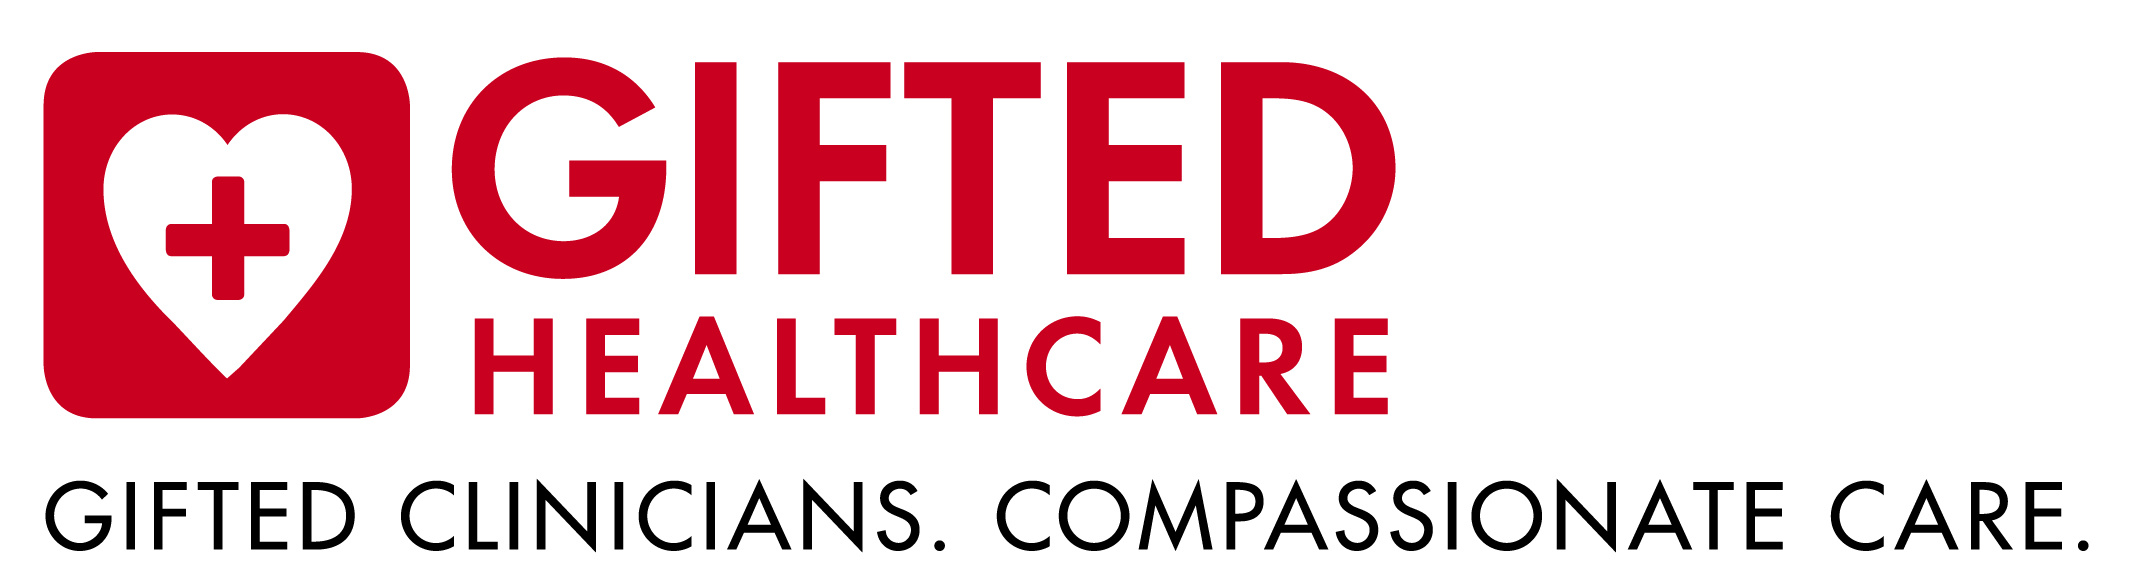 Gifted-Healthcare-logo-color-tagline.jpg